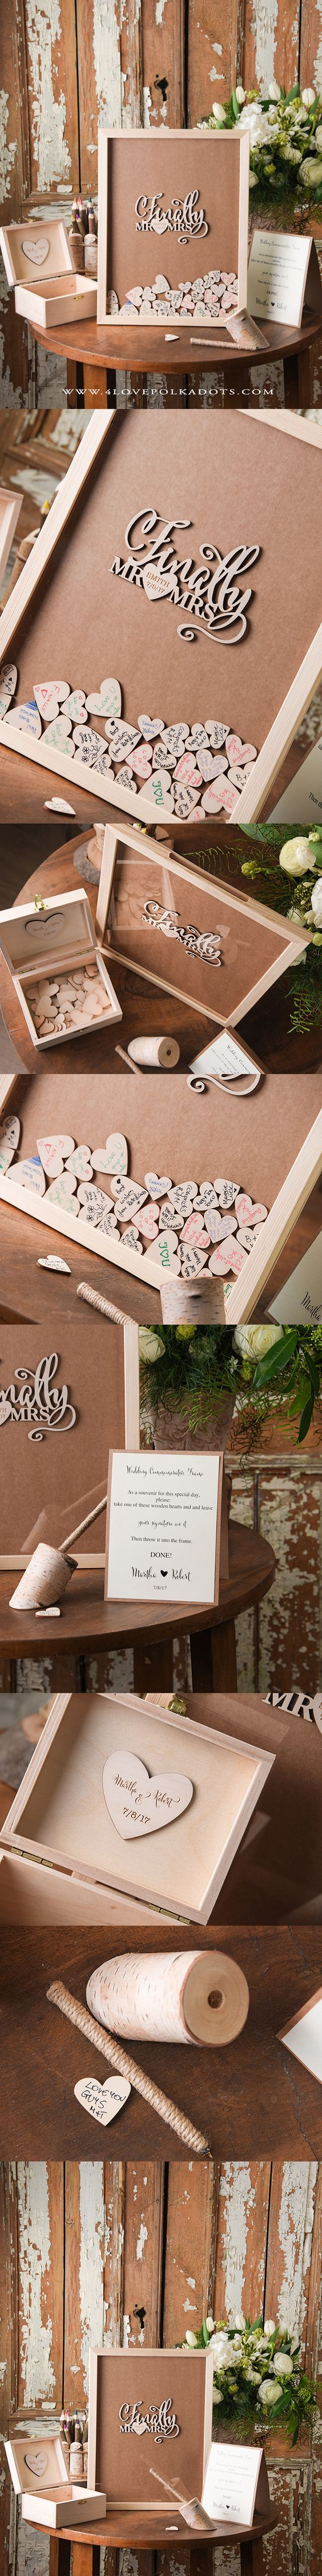 Finally Mr & Mrs ! Alternative Wedding Guest Book Frame  ||  4lovepokladots